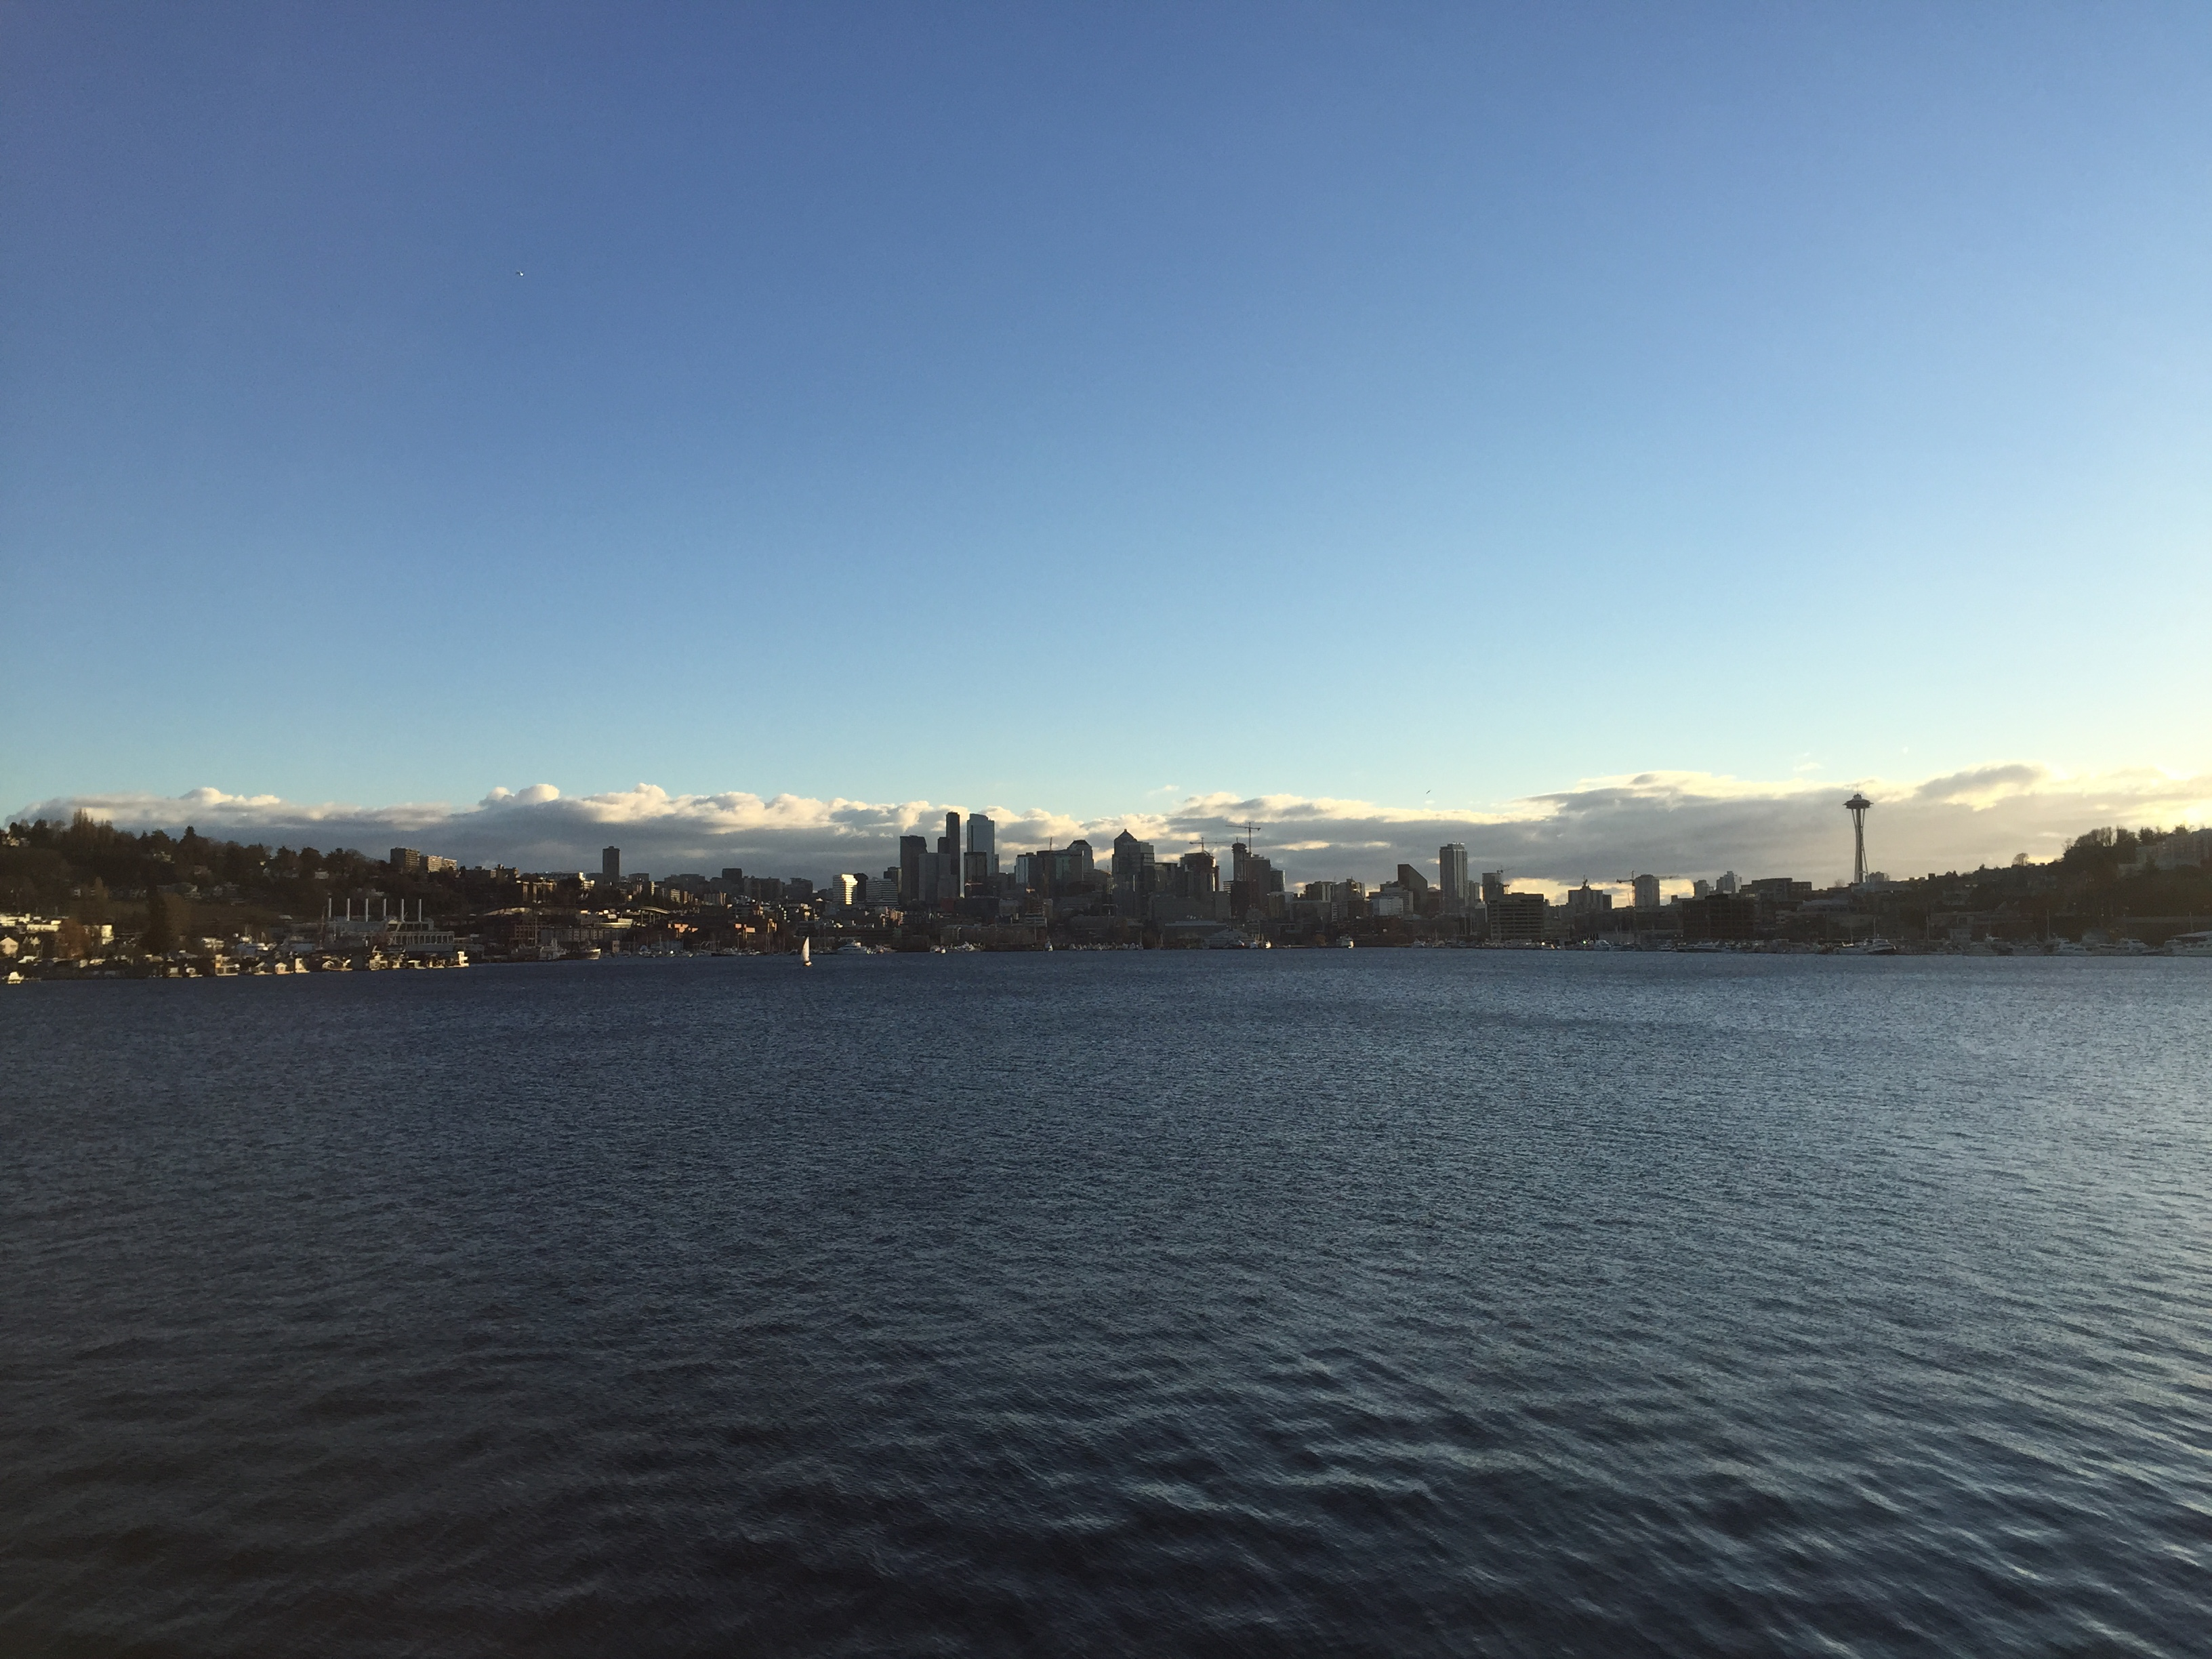 View across Lake Union of the Seattle skyline